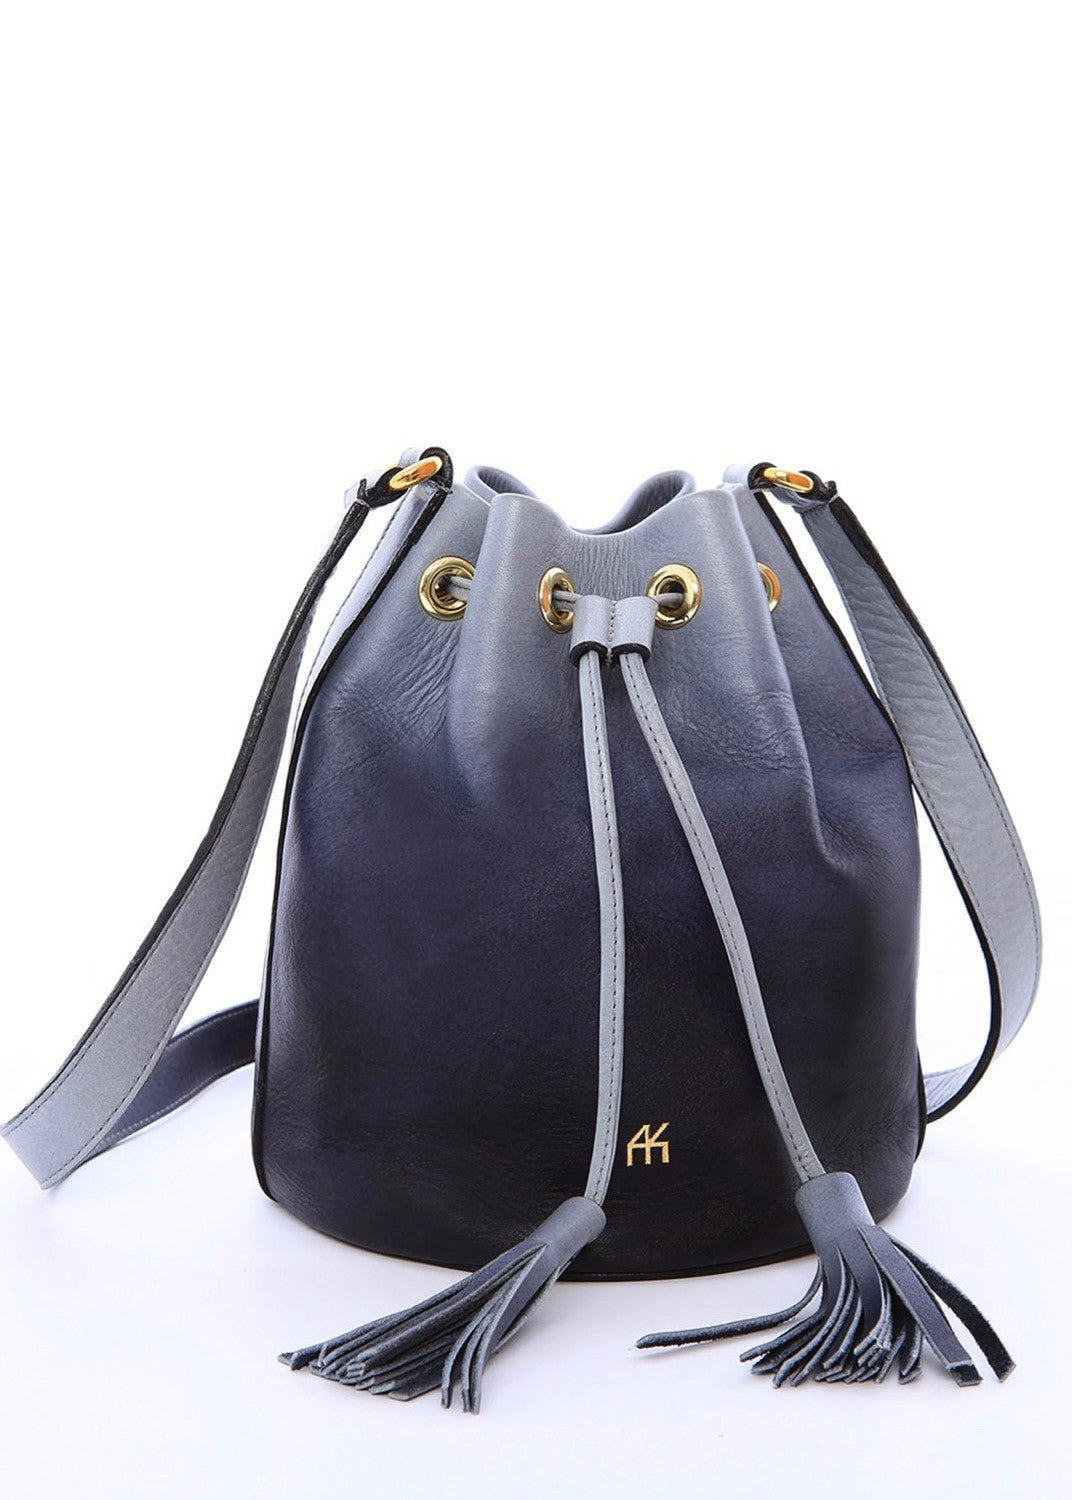 AYK moon bucket bag